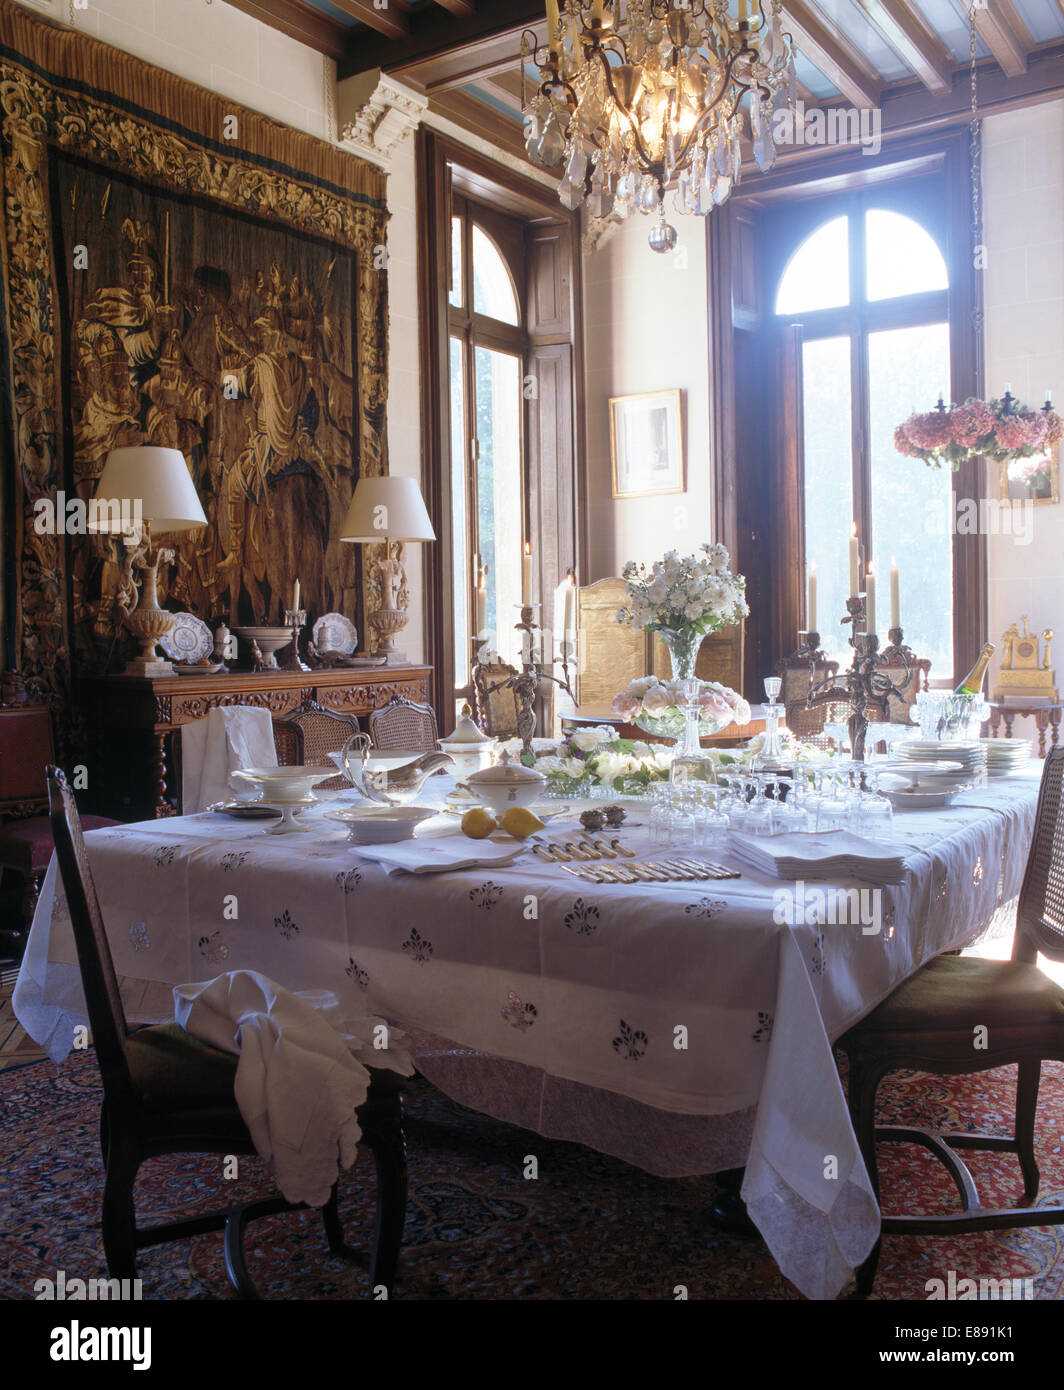 https://c8.alamy.com/comp/E891K1/pale-grey-cloth-on-table-set-for-lunch-in-french-country-dining-room-E891K1.jpg